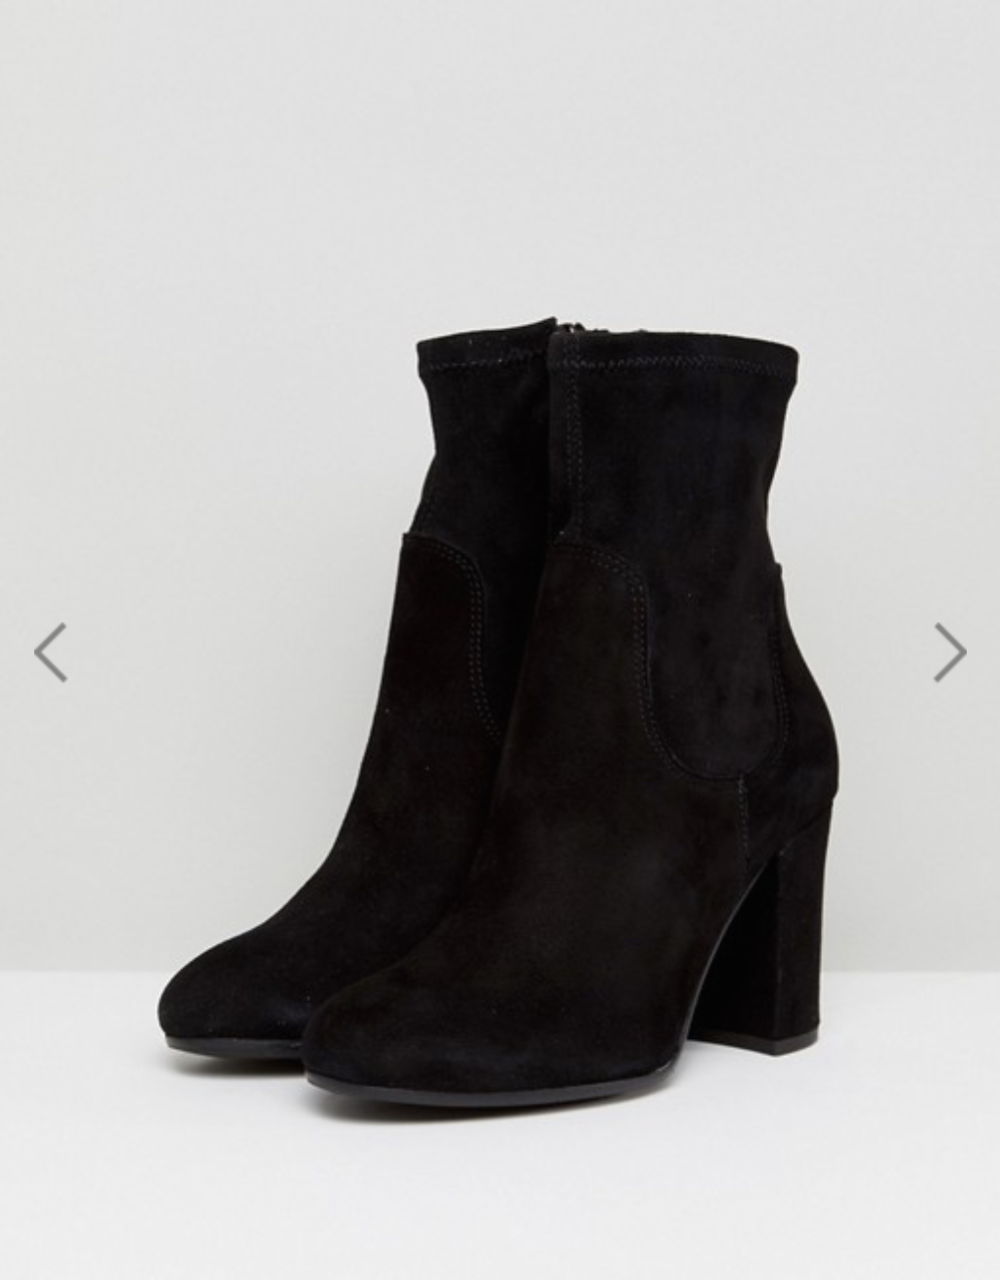 Dune London Oliah Suede Heeled Boots - ASOS